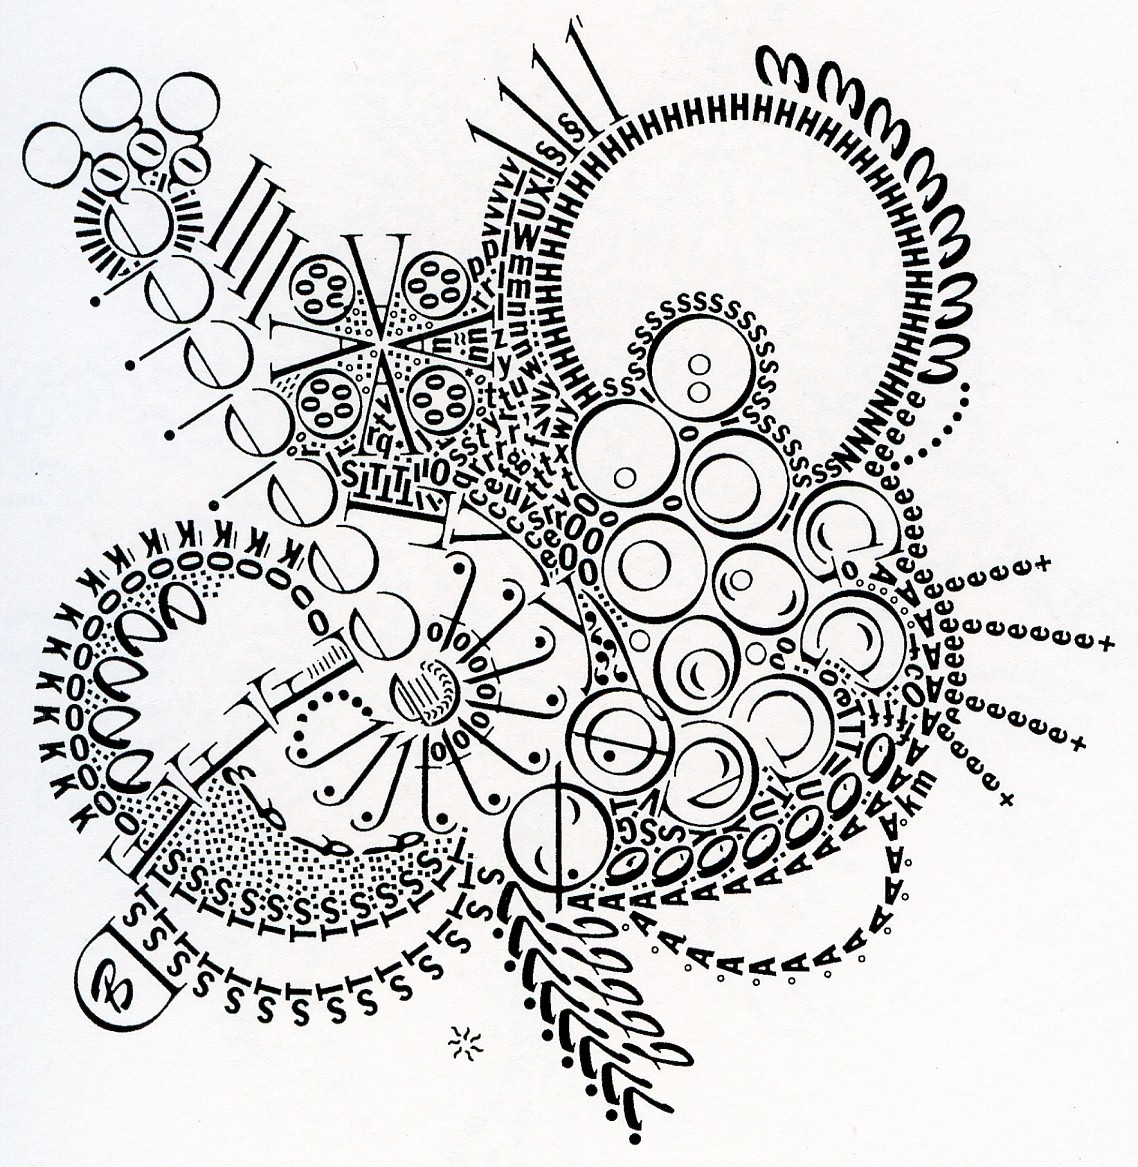 visual-poetry: letraset drawing by kelly mark